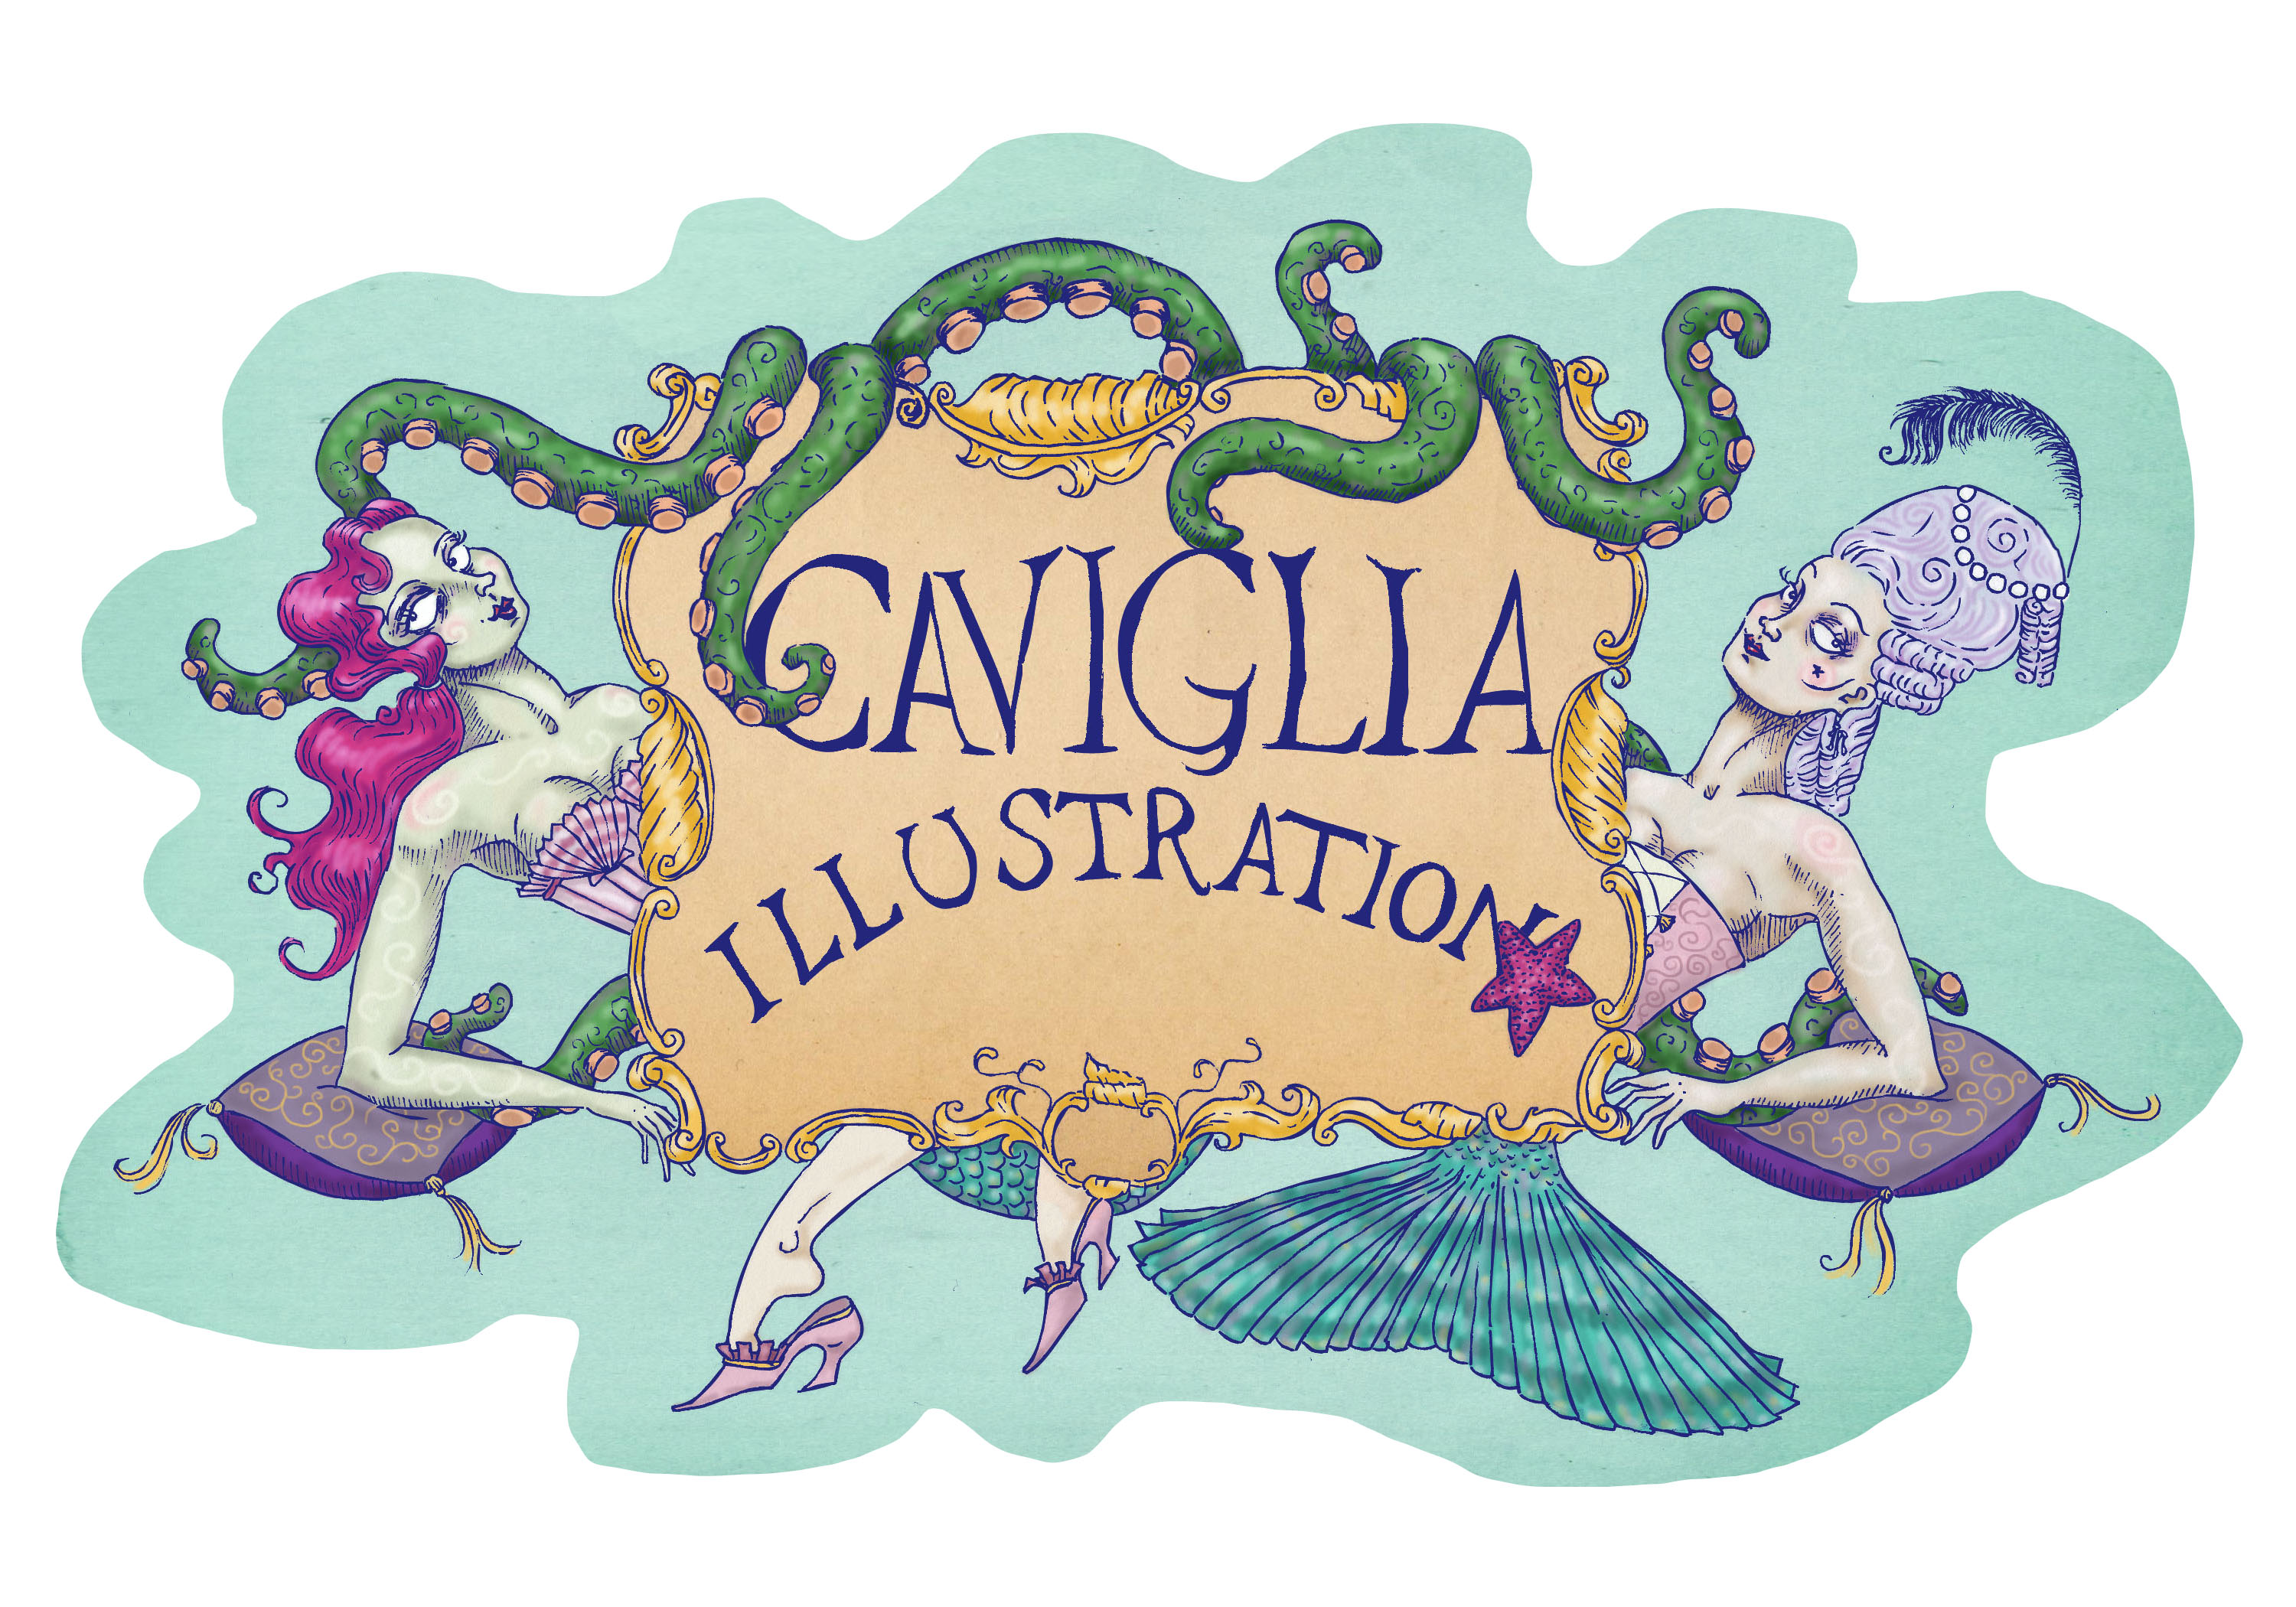 Caviglia Illustration